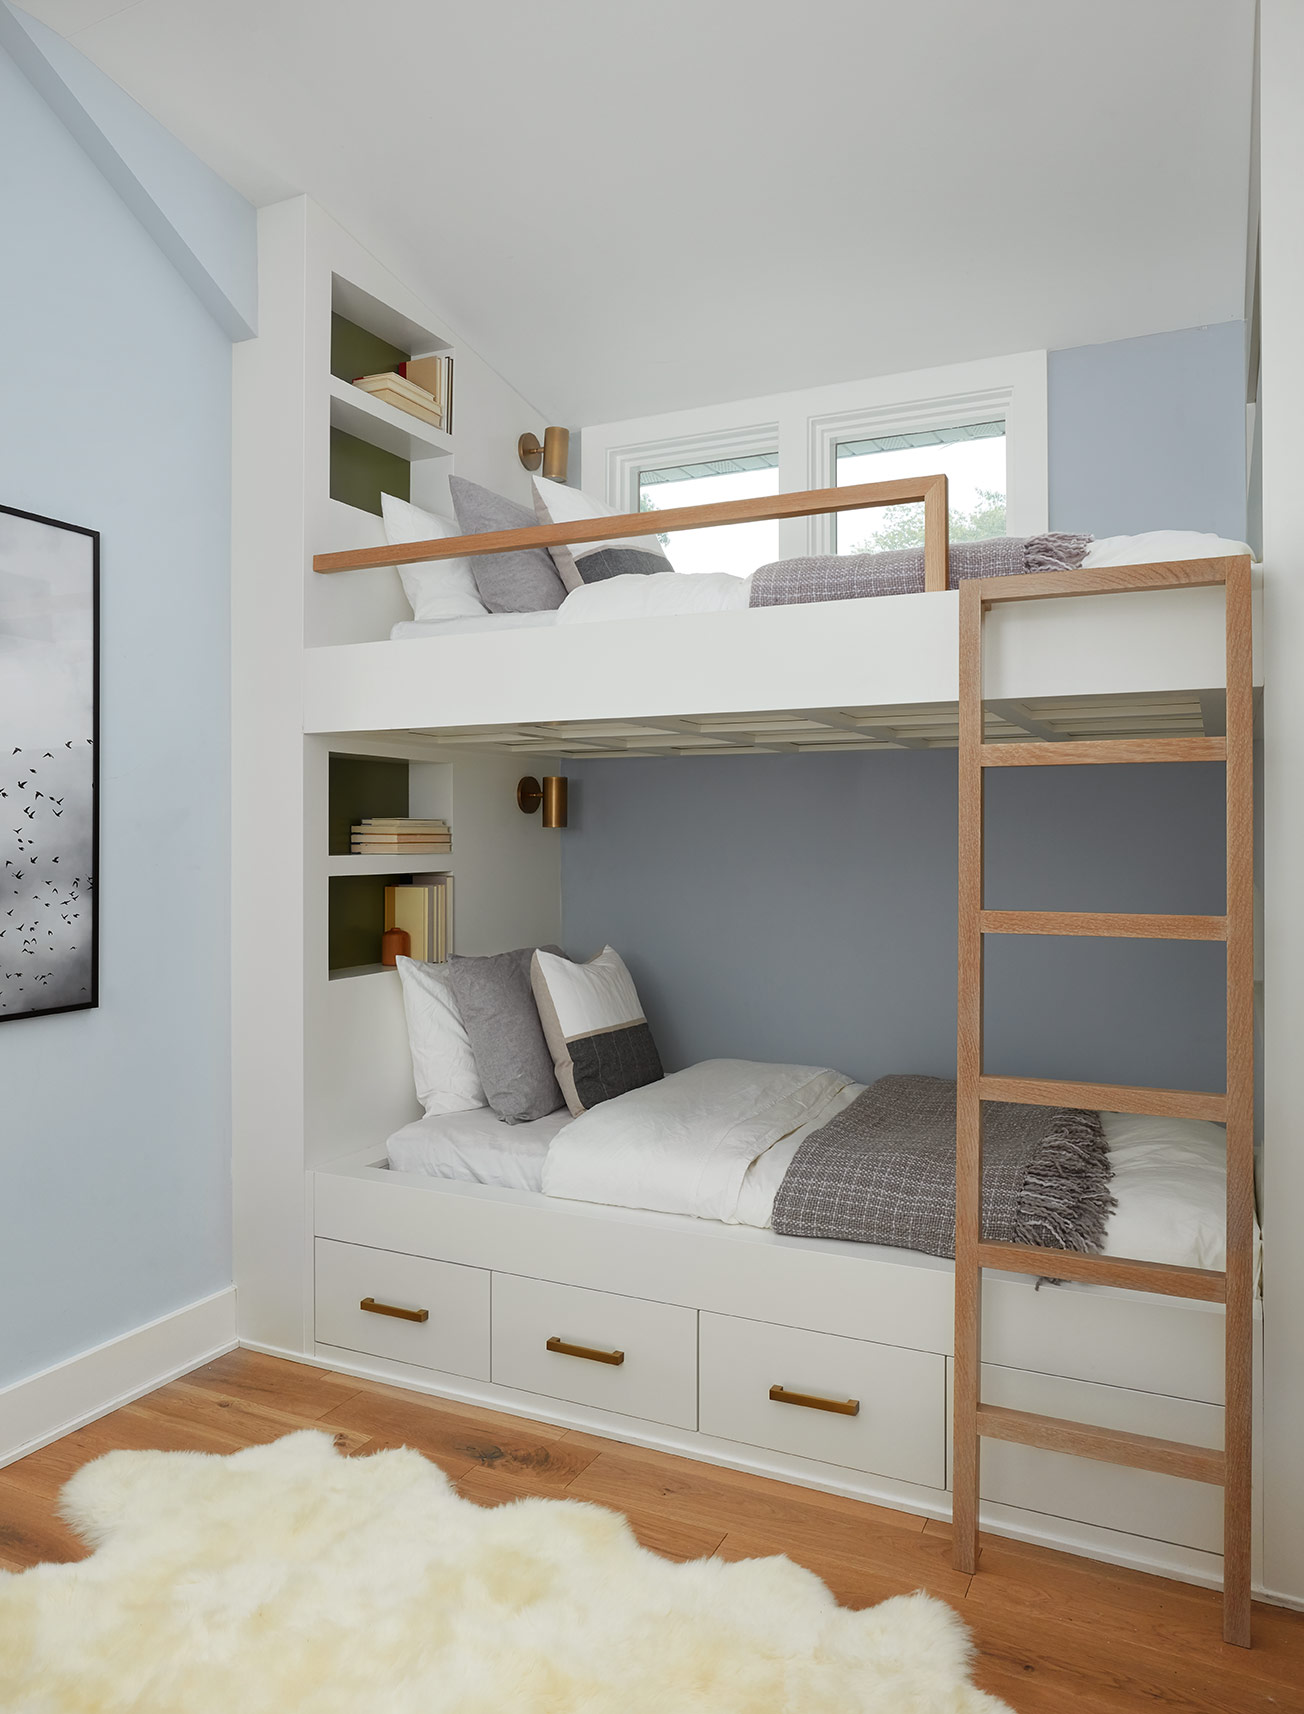 Last but CERTAINLY not least, at the top of the stairs, we built-in custom bunk beds to maximize the efficiency of the space and add a playful, fun vibe to the house!